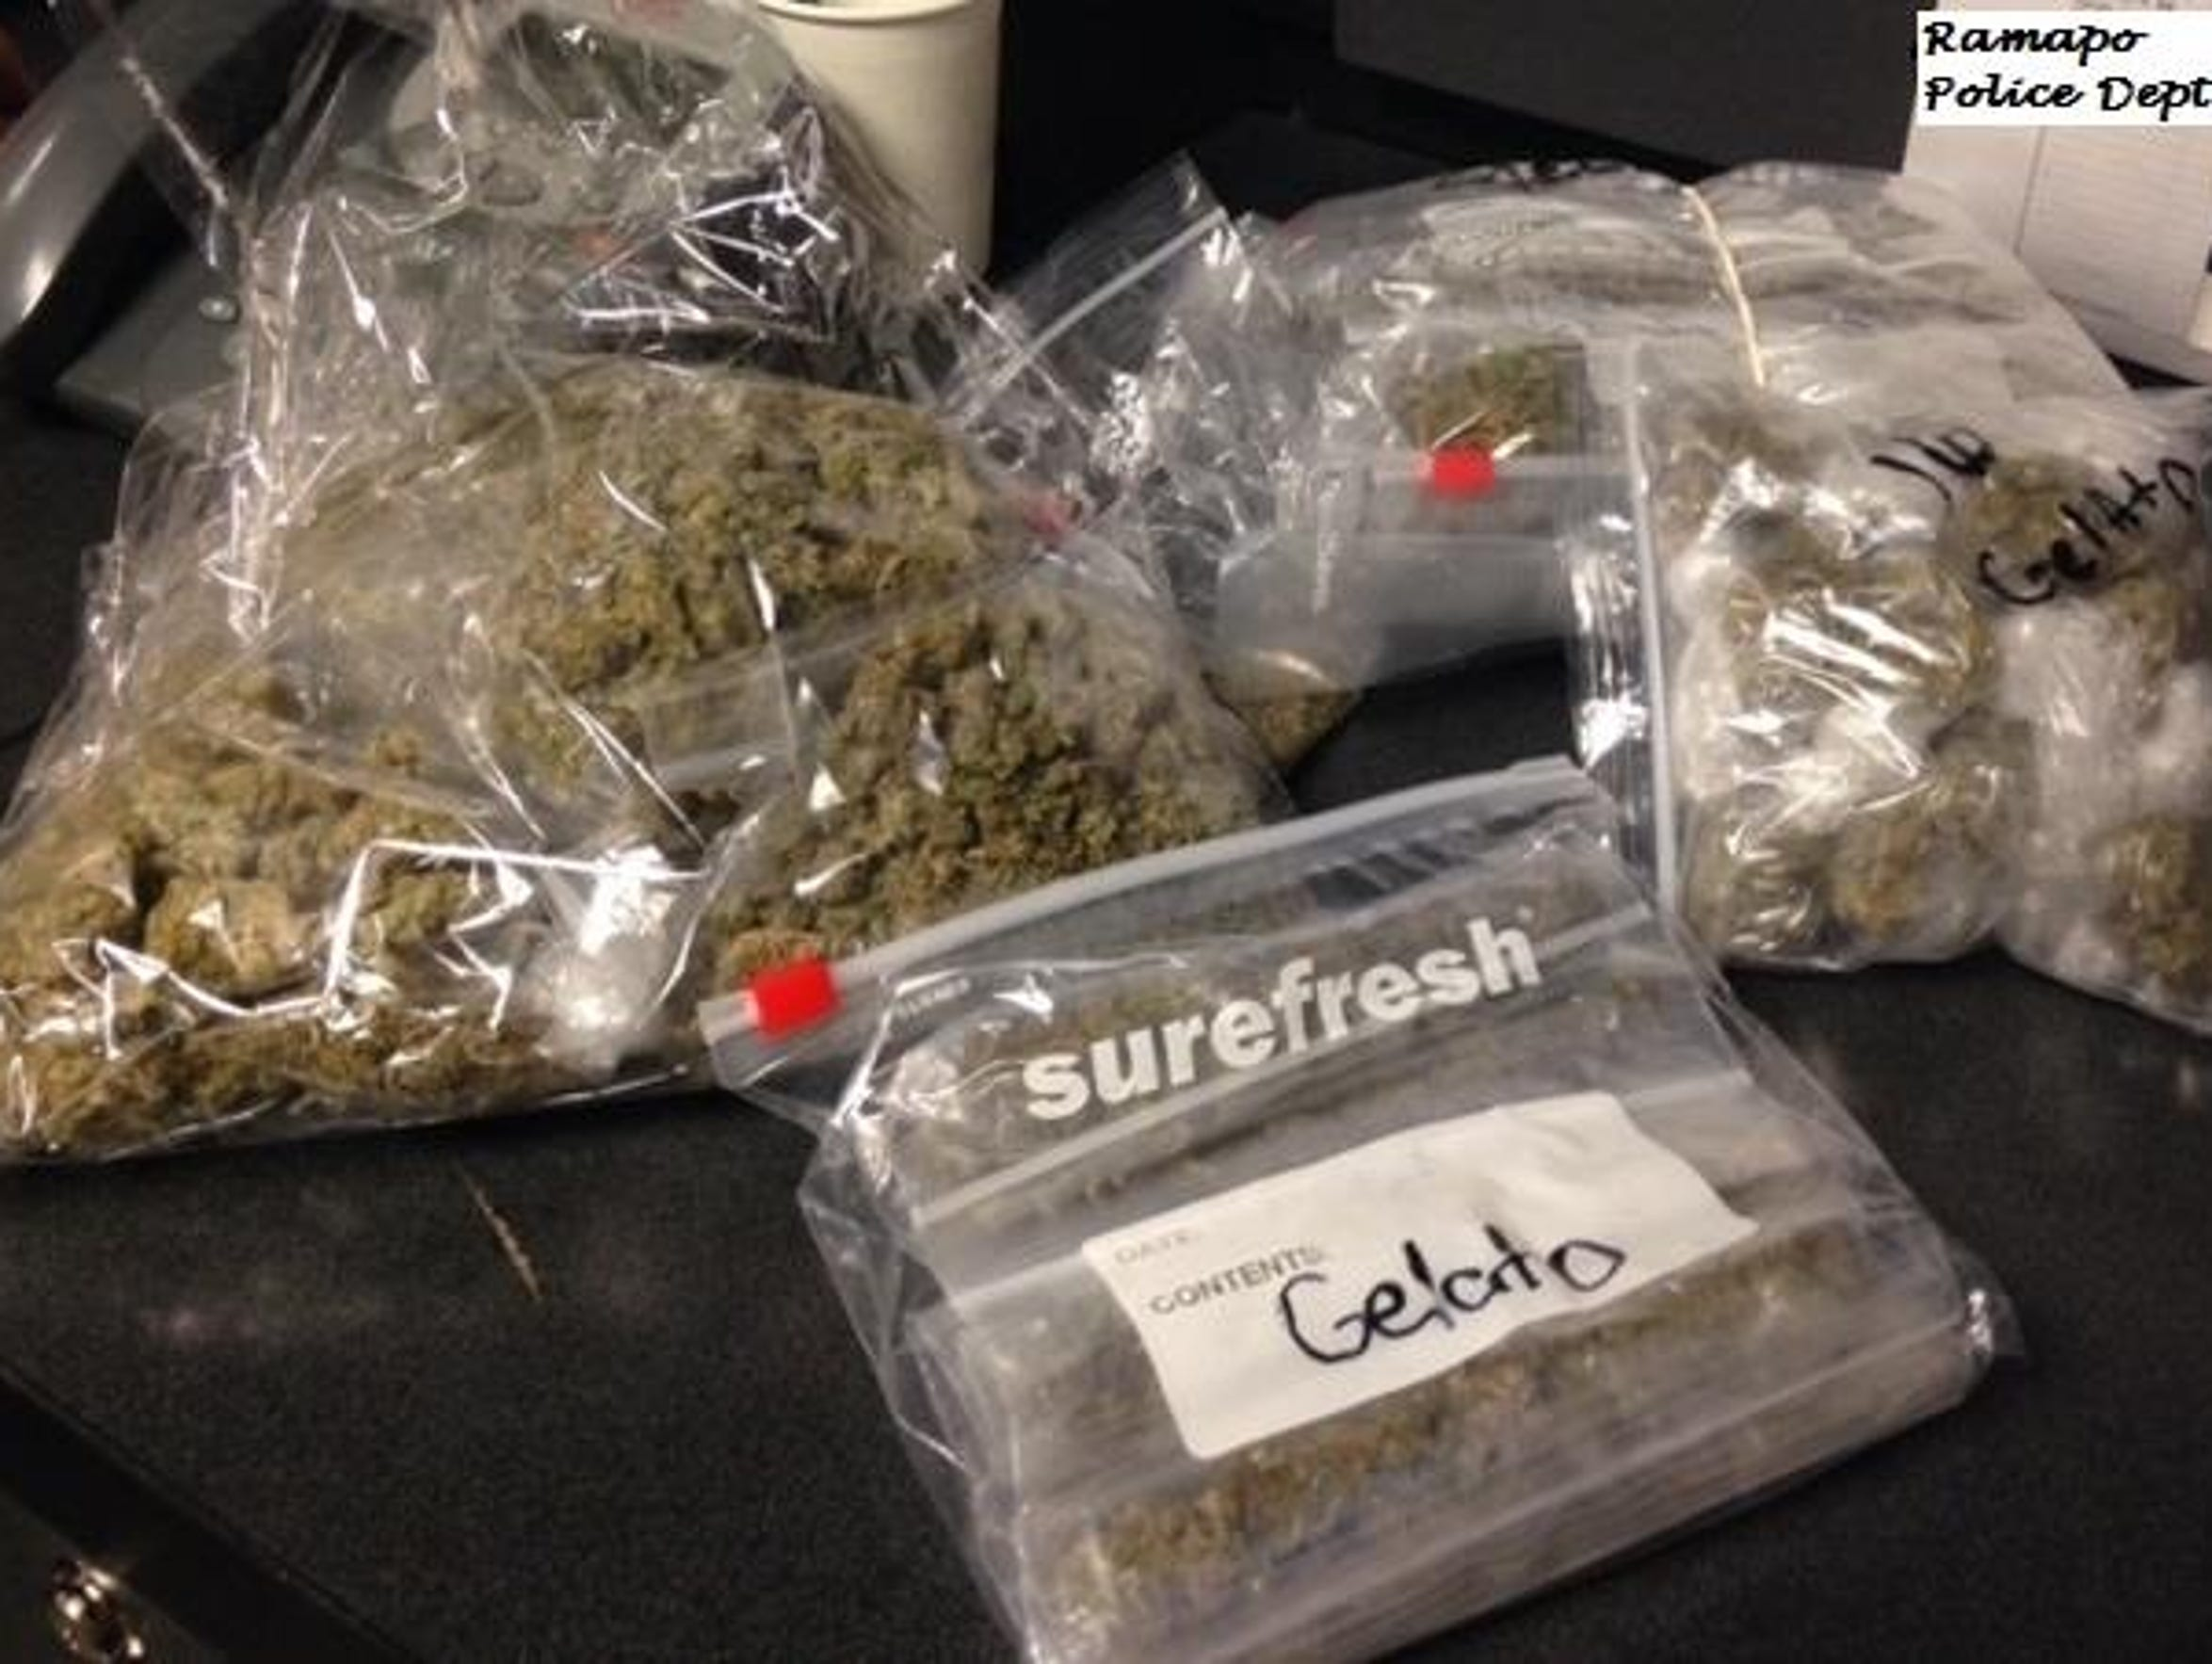 Ramapo police seized 2 pounds of marijuana after a